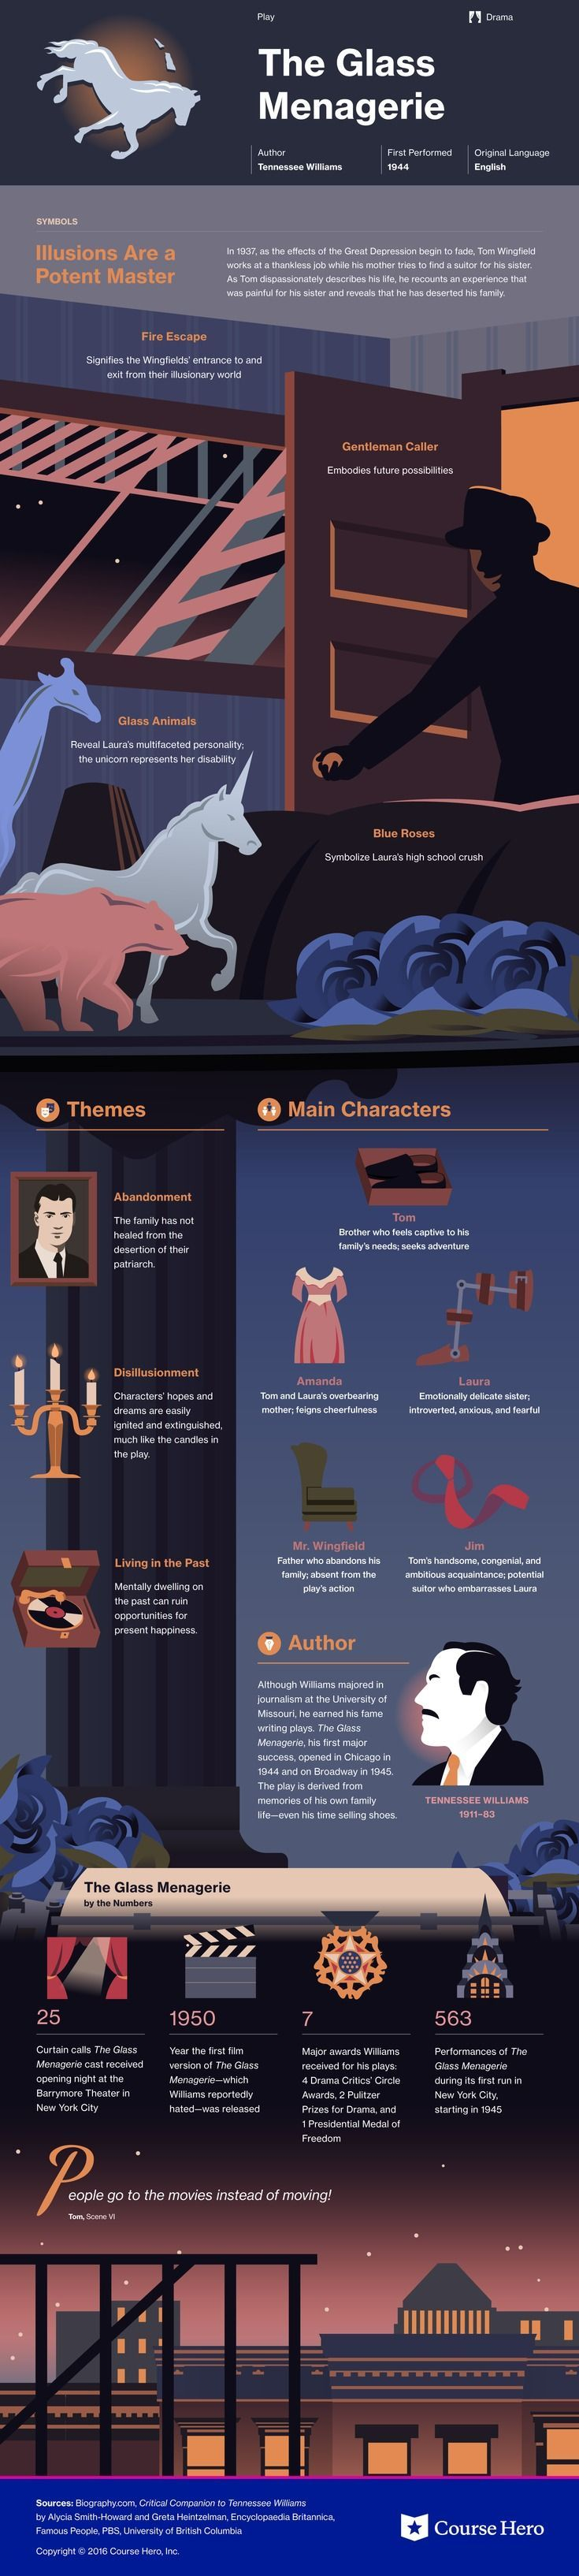 This @CourseHero infographic on The Glass Menagerie is both visually stunning and informative!